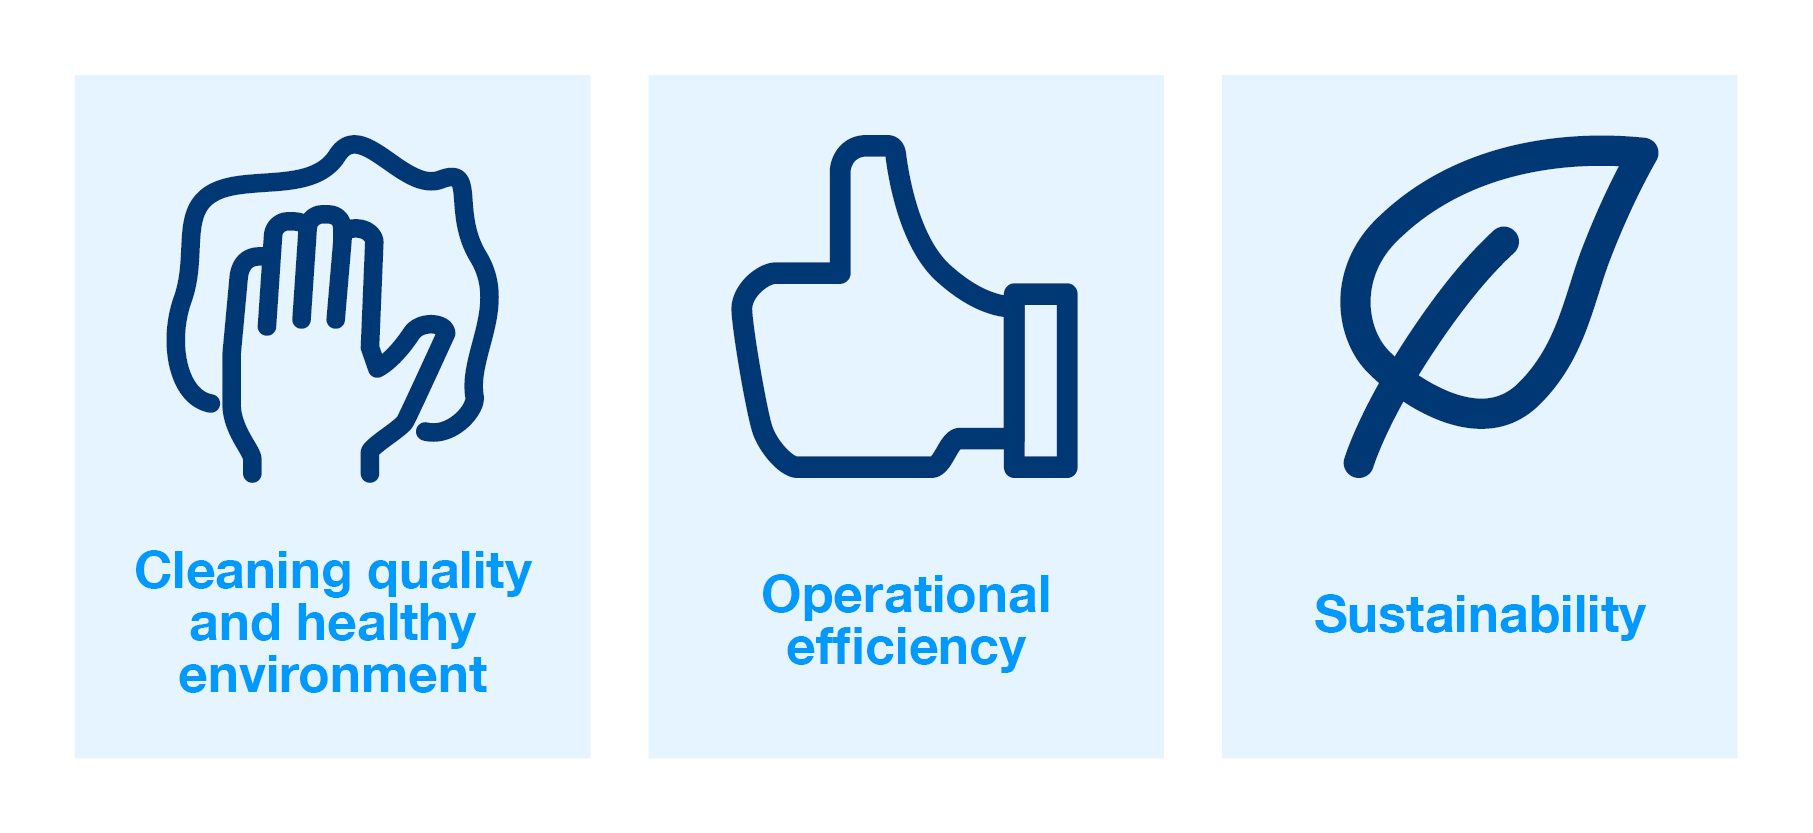 Facility manager priorities, cleaning, operational efficiency, sustainability